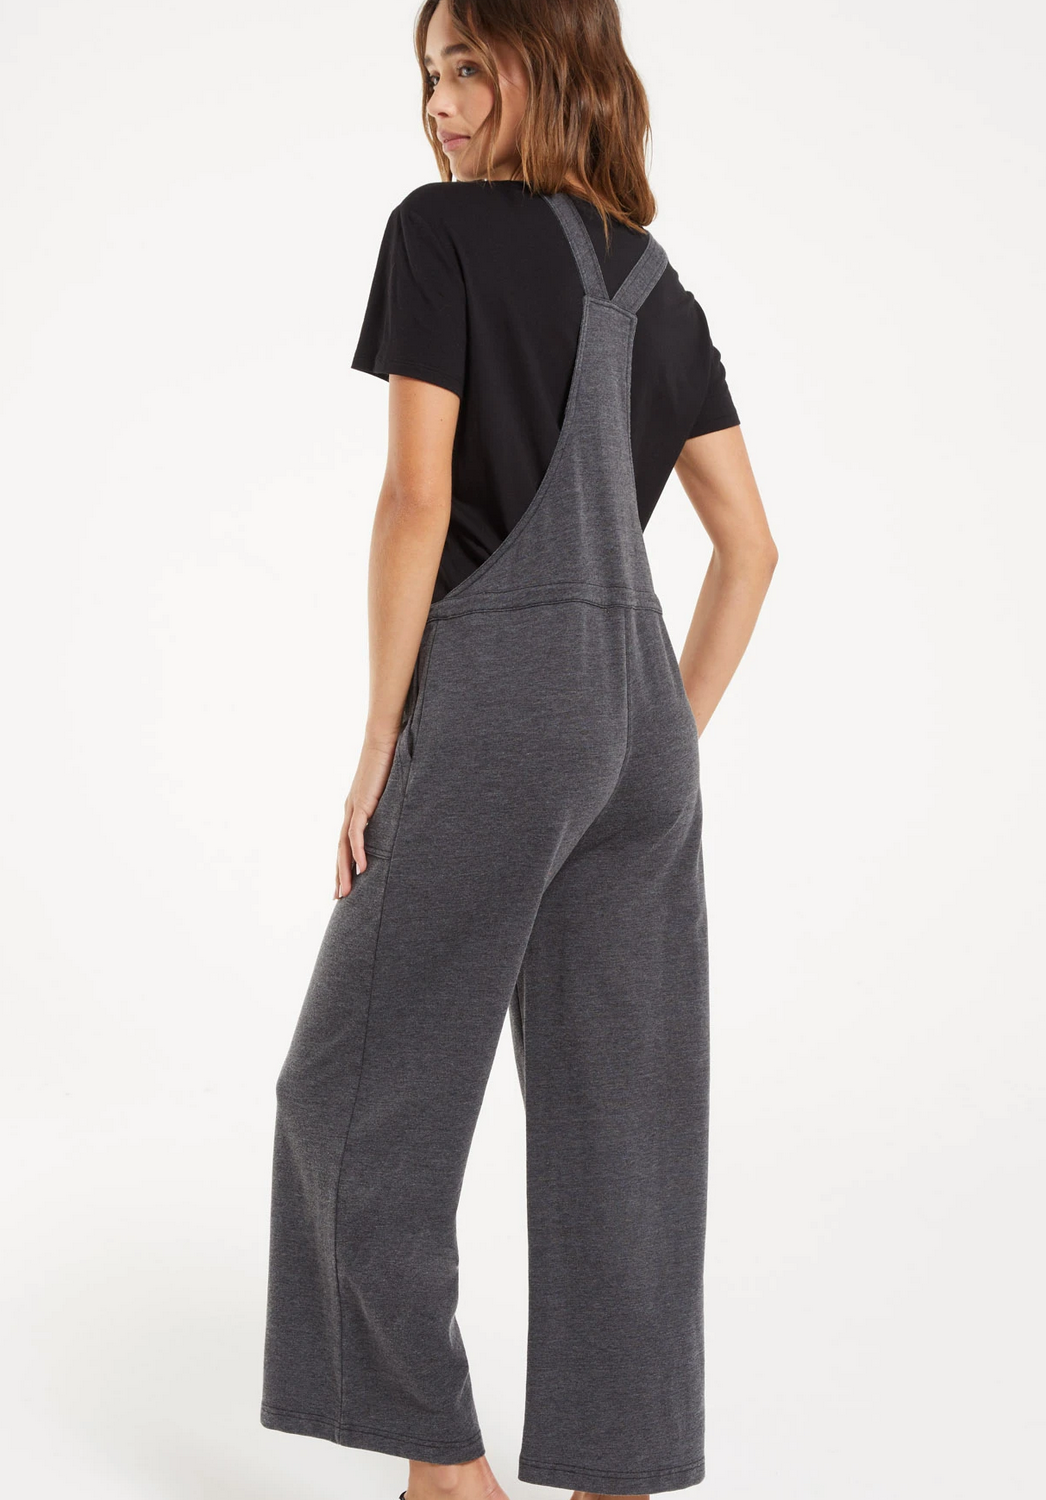 Z Supply Cinched Waist Overalls- Black